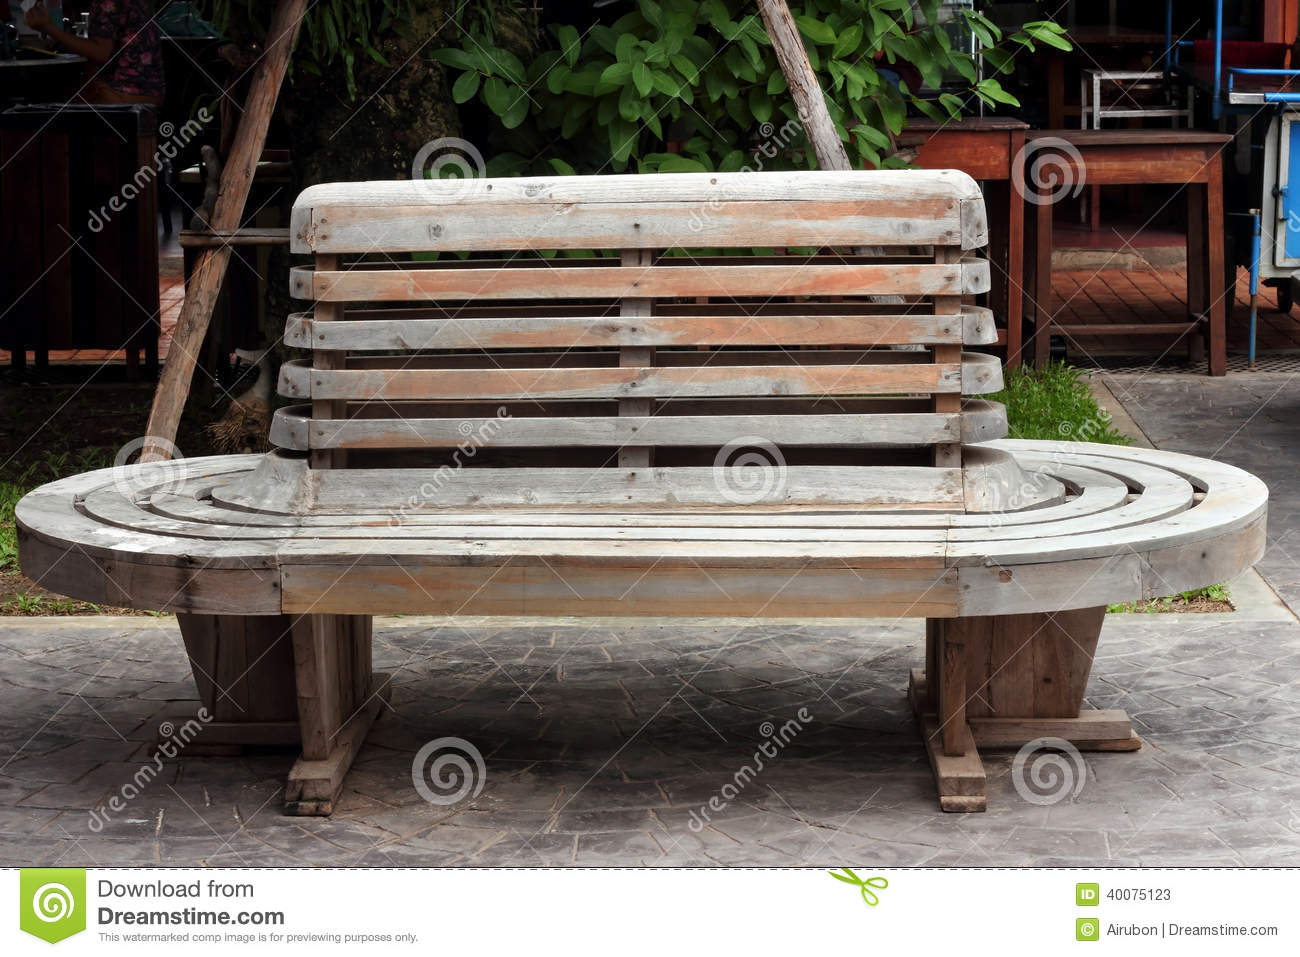 Vintage Wooden Bench On Railway Station Stock Image ...